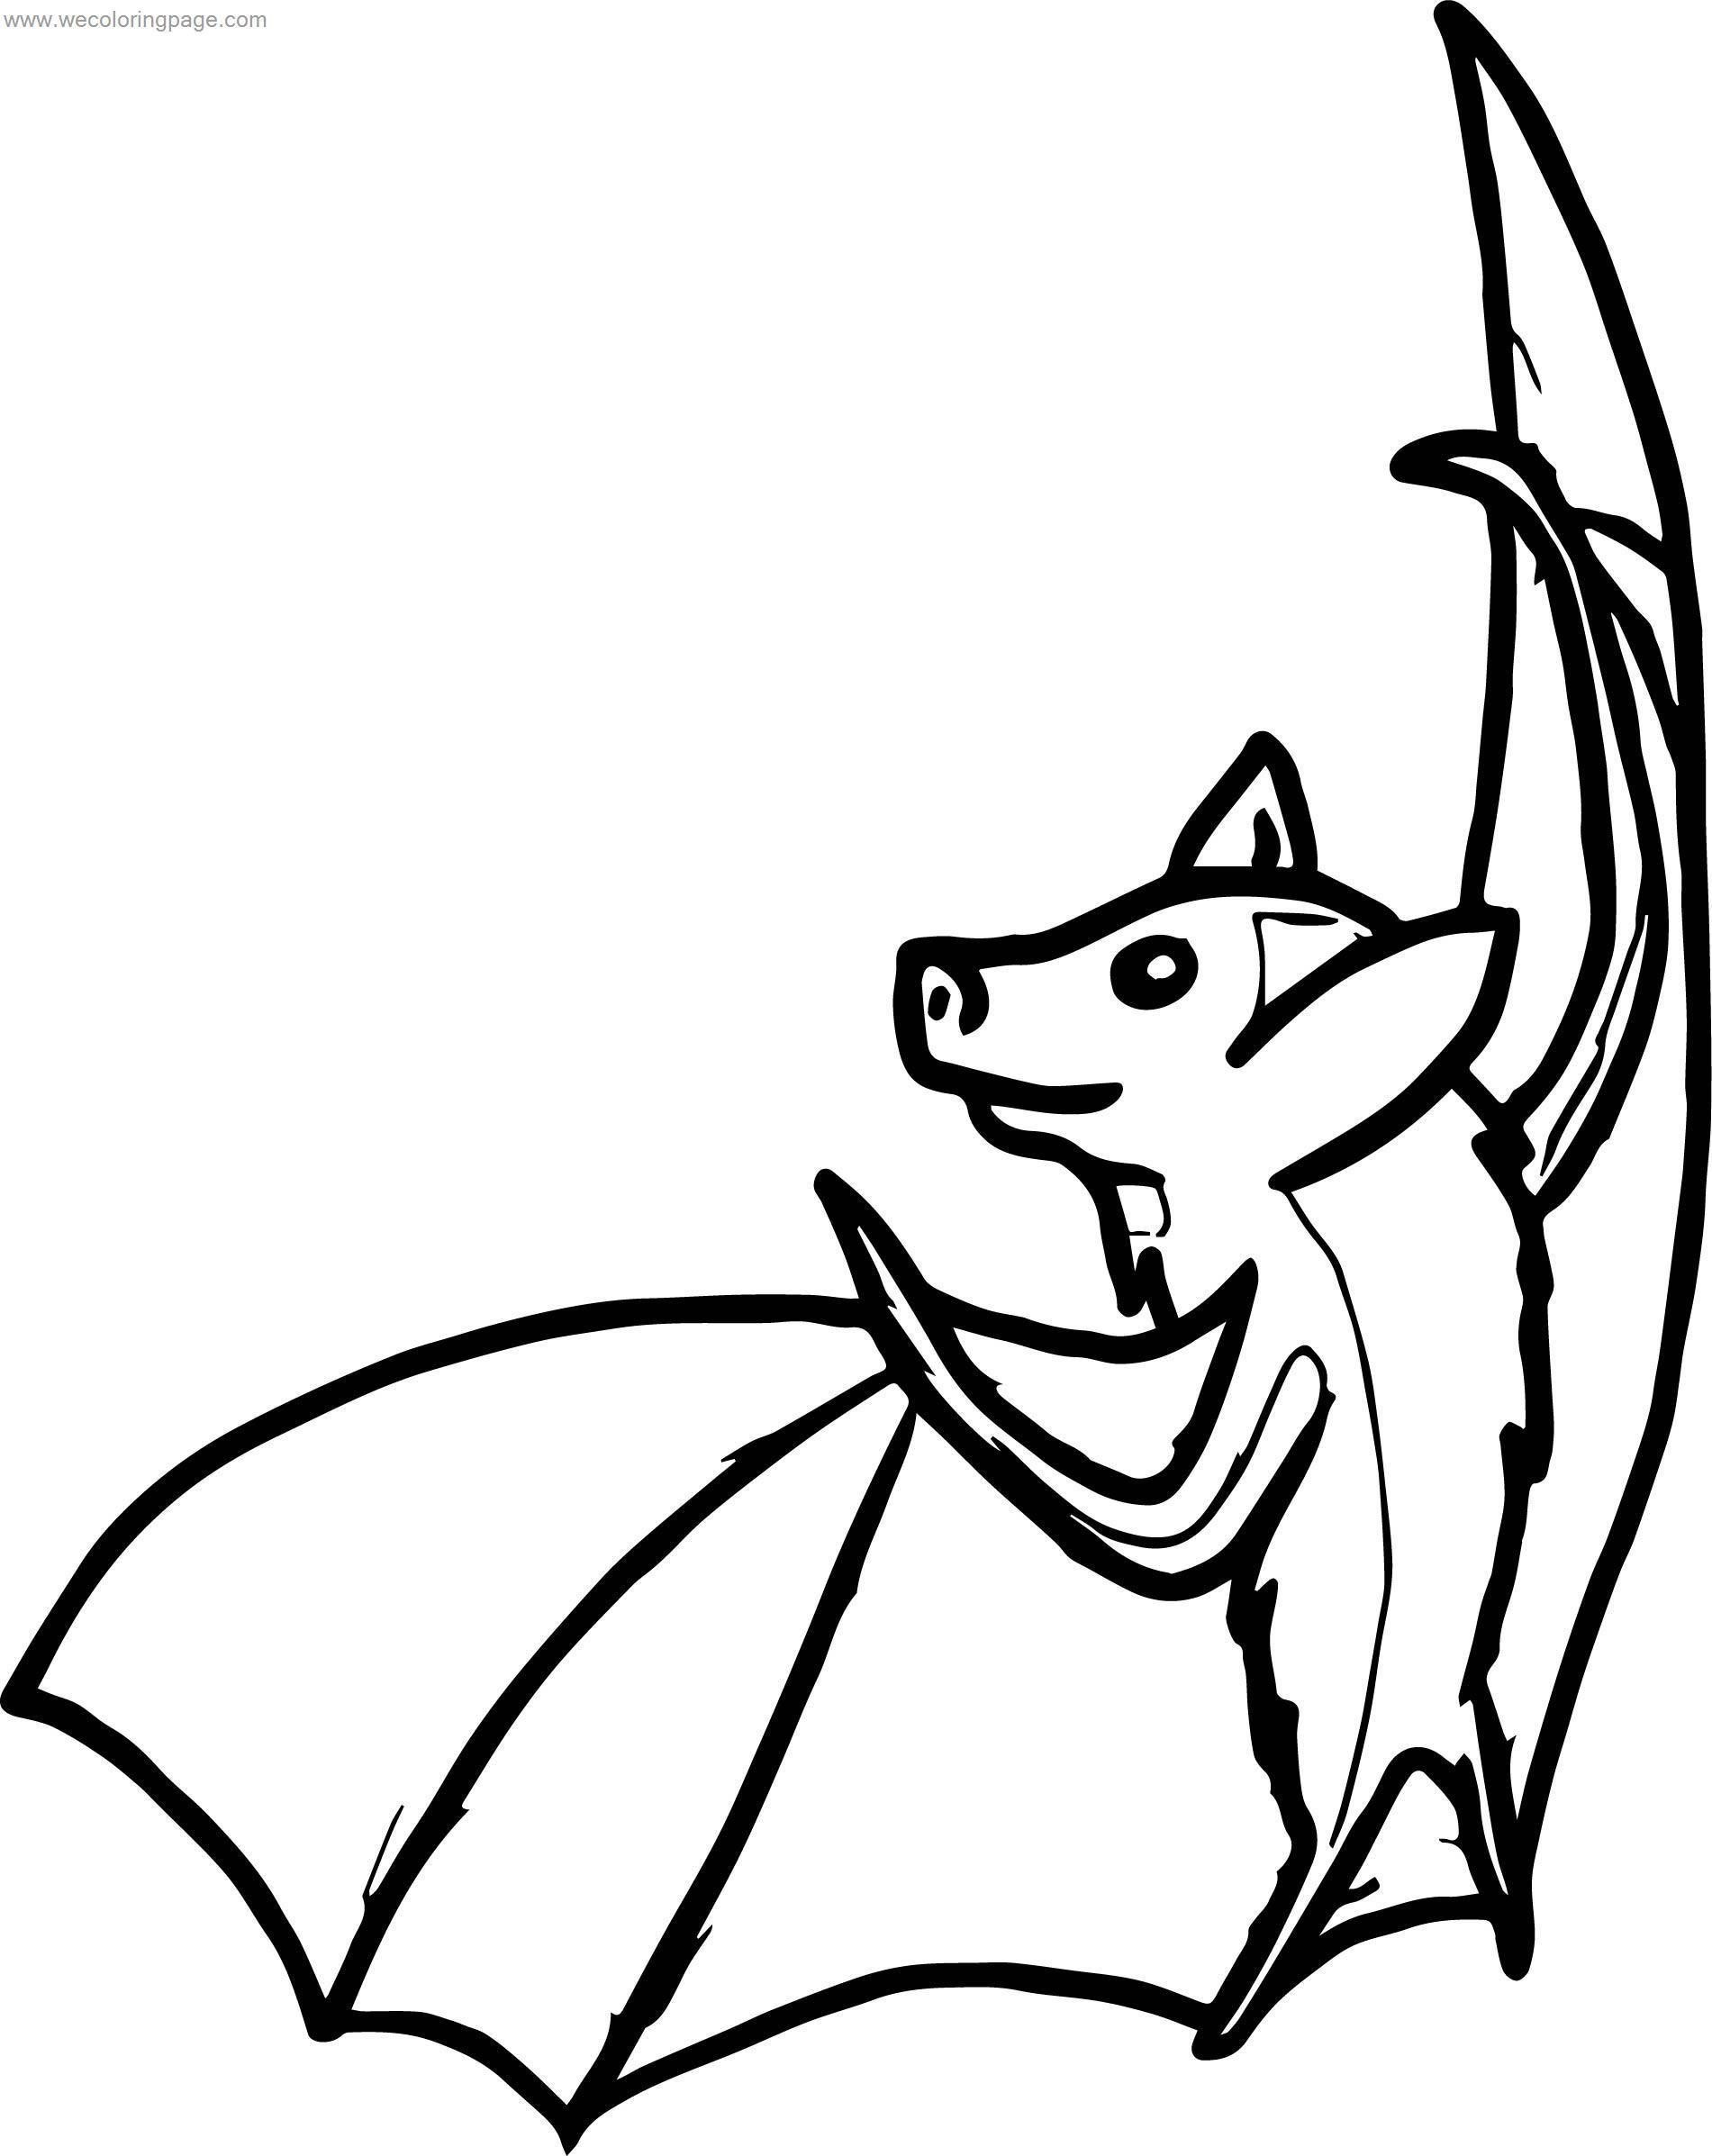 Can Bat Coloring Page